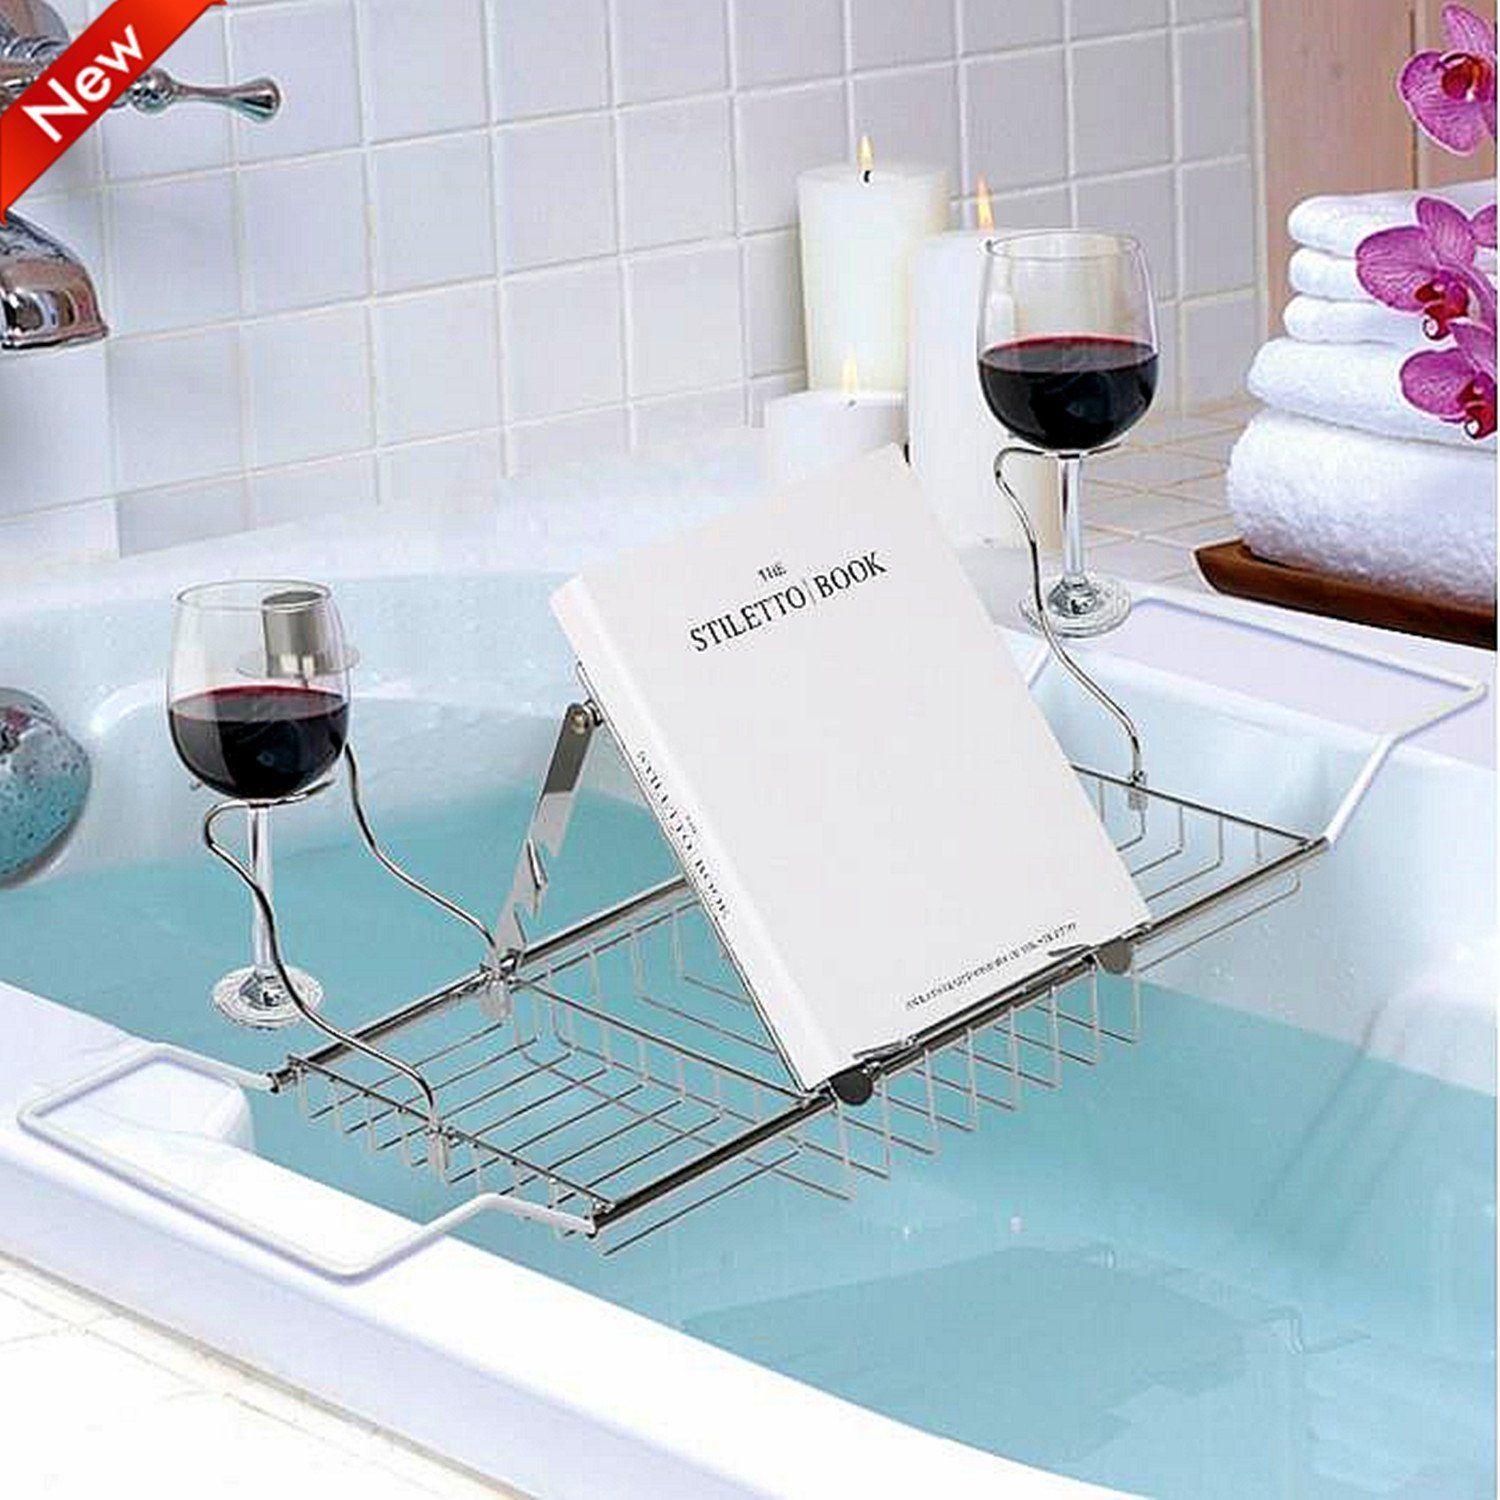 Popamazing Extendable Over Bath Tub Racks with Wine/Book/Candle ...